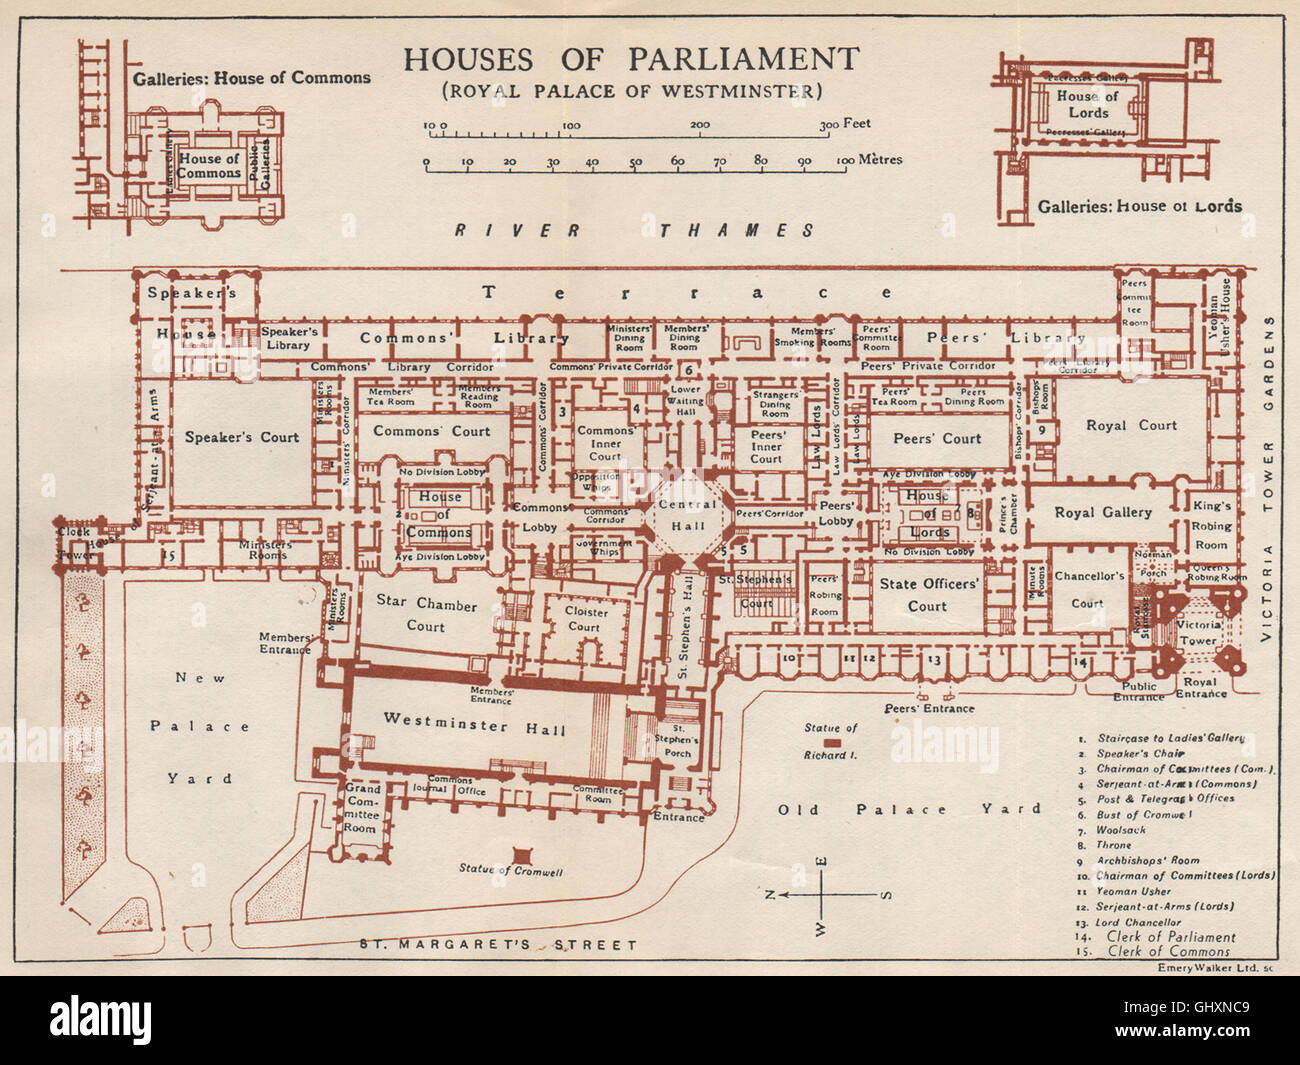 Houses of parliament layout